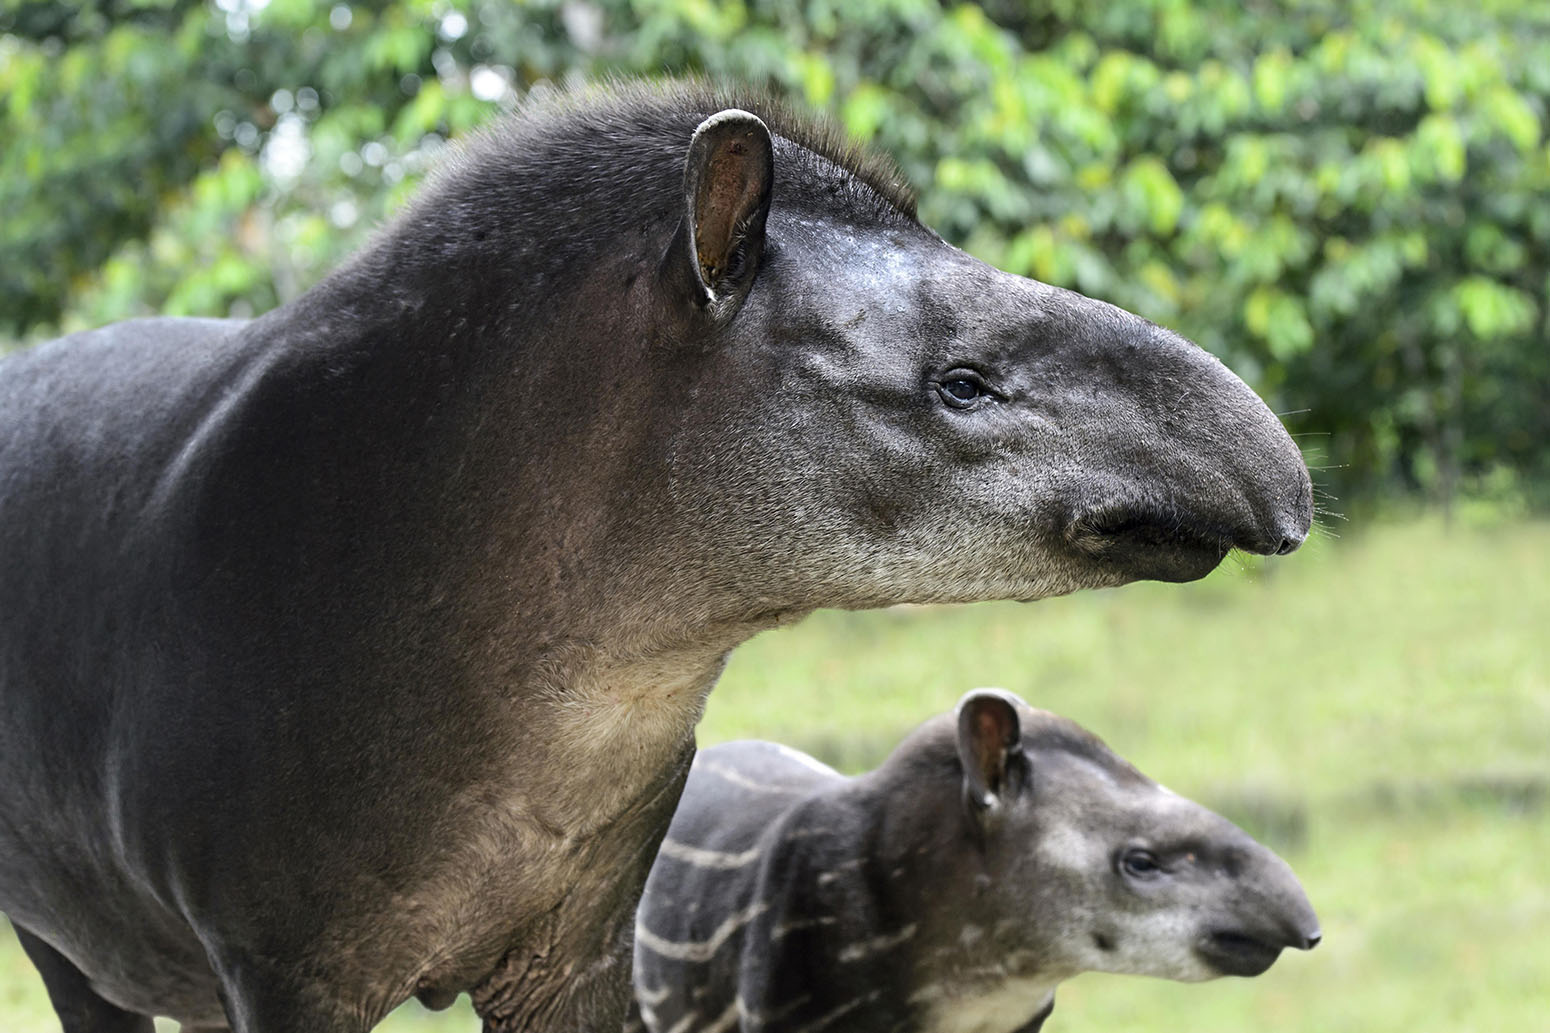 10 Feb 2015, Yasuni National Park, Ecuador. South American tapir (Tapirus terrestris), female with young, tapir family (Tapiridae), Amazon rainforest, Yasuni National Park, Ecuador, South America. © Guenter Fischer/imageBROKER/Corbis